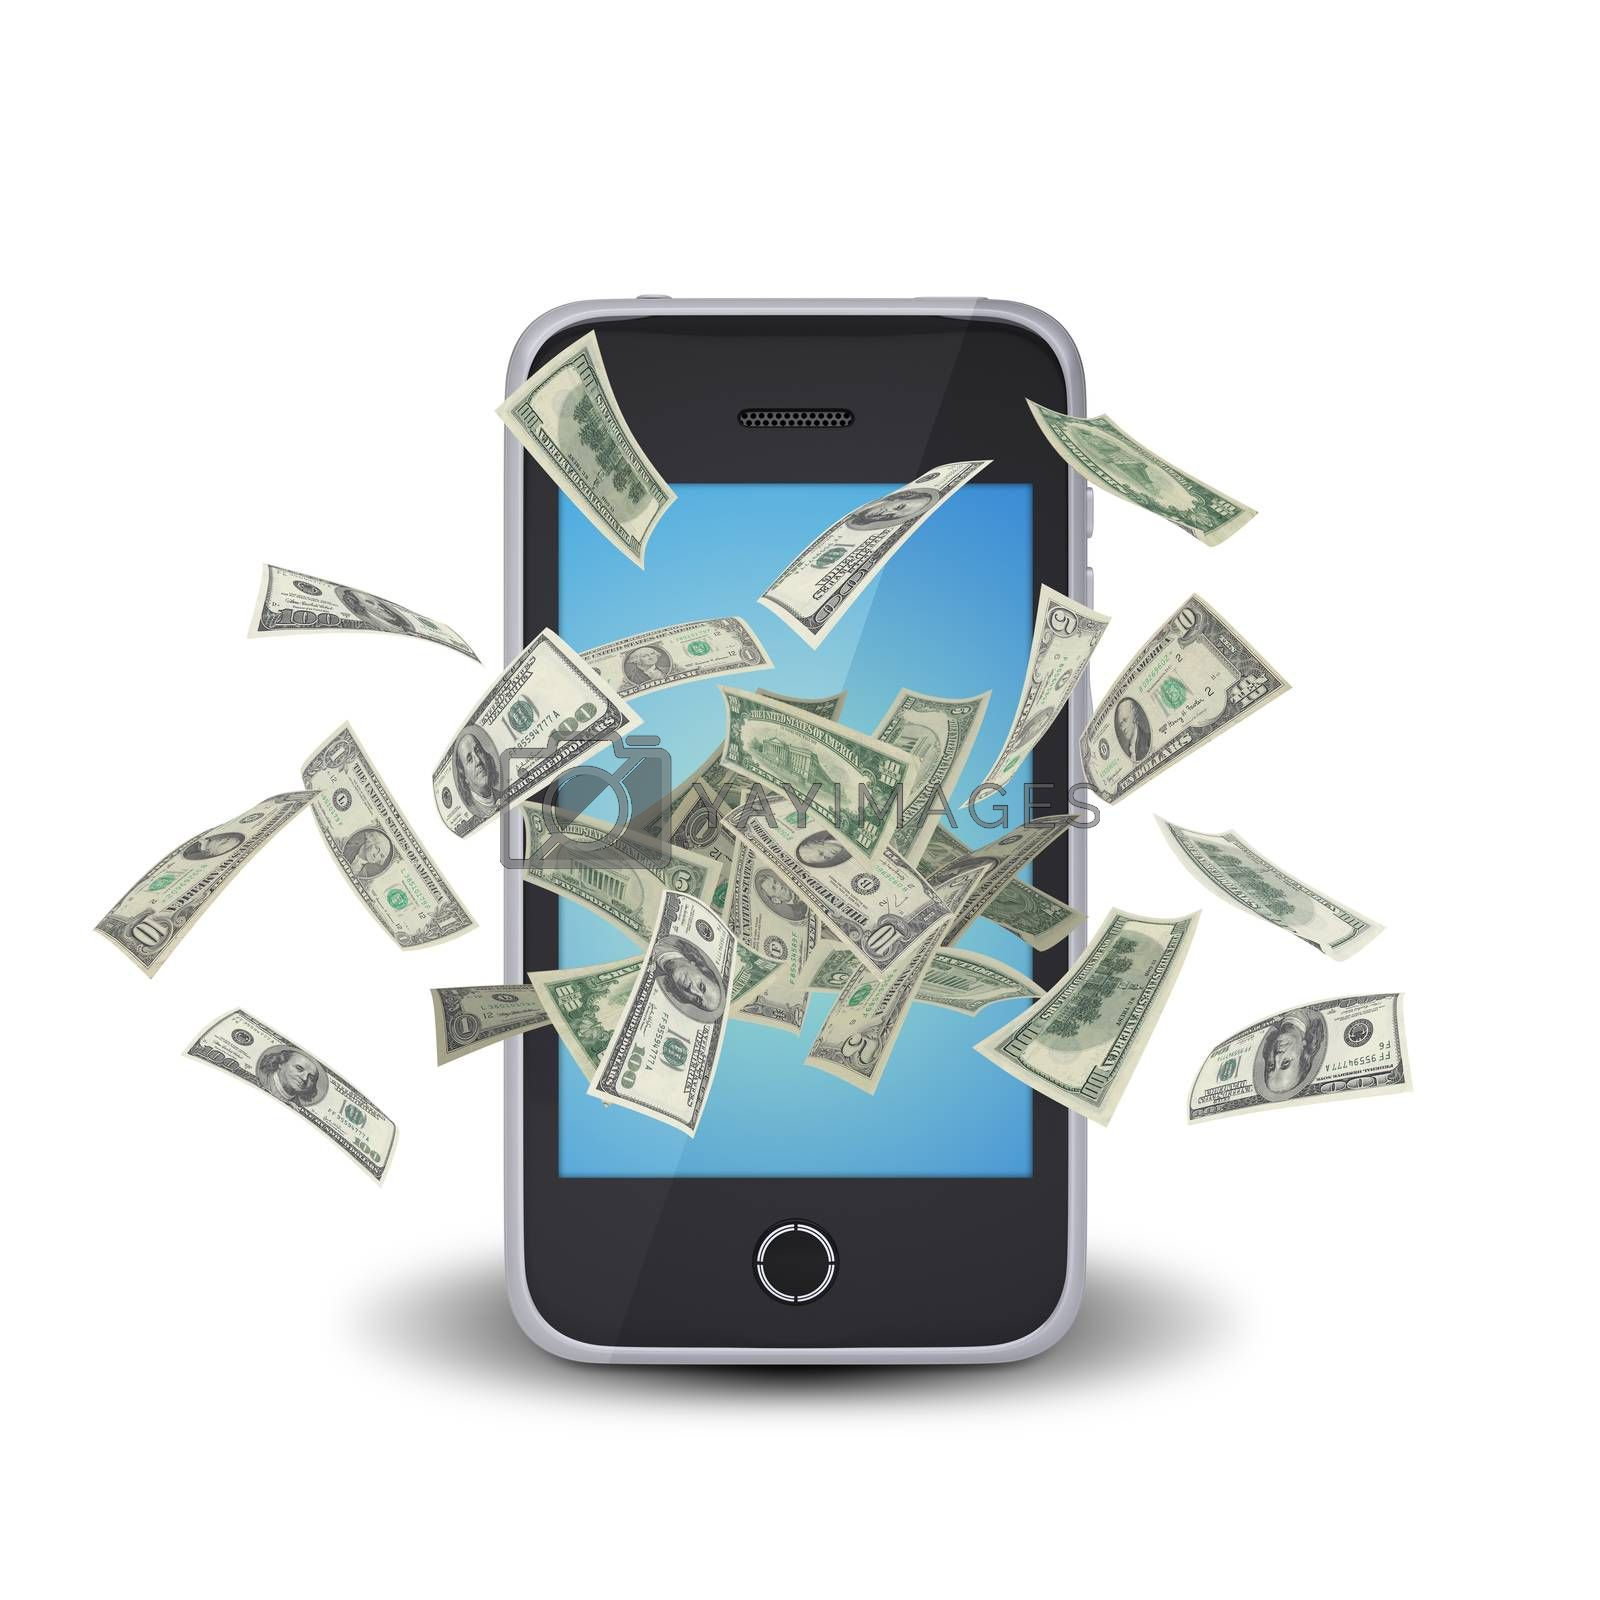 Dollar notes flying around the smart phone by cherezoff